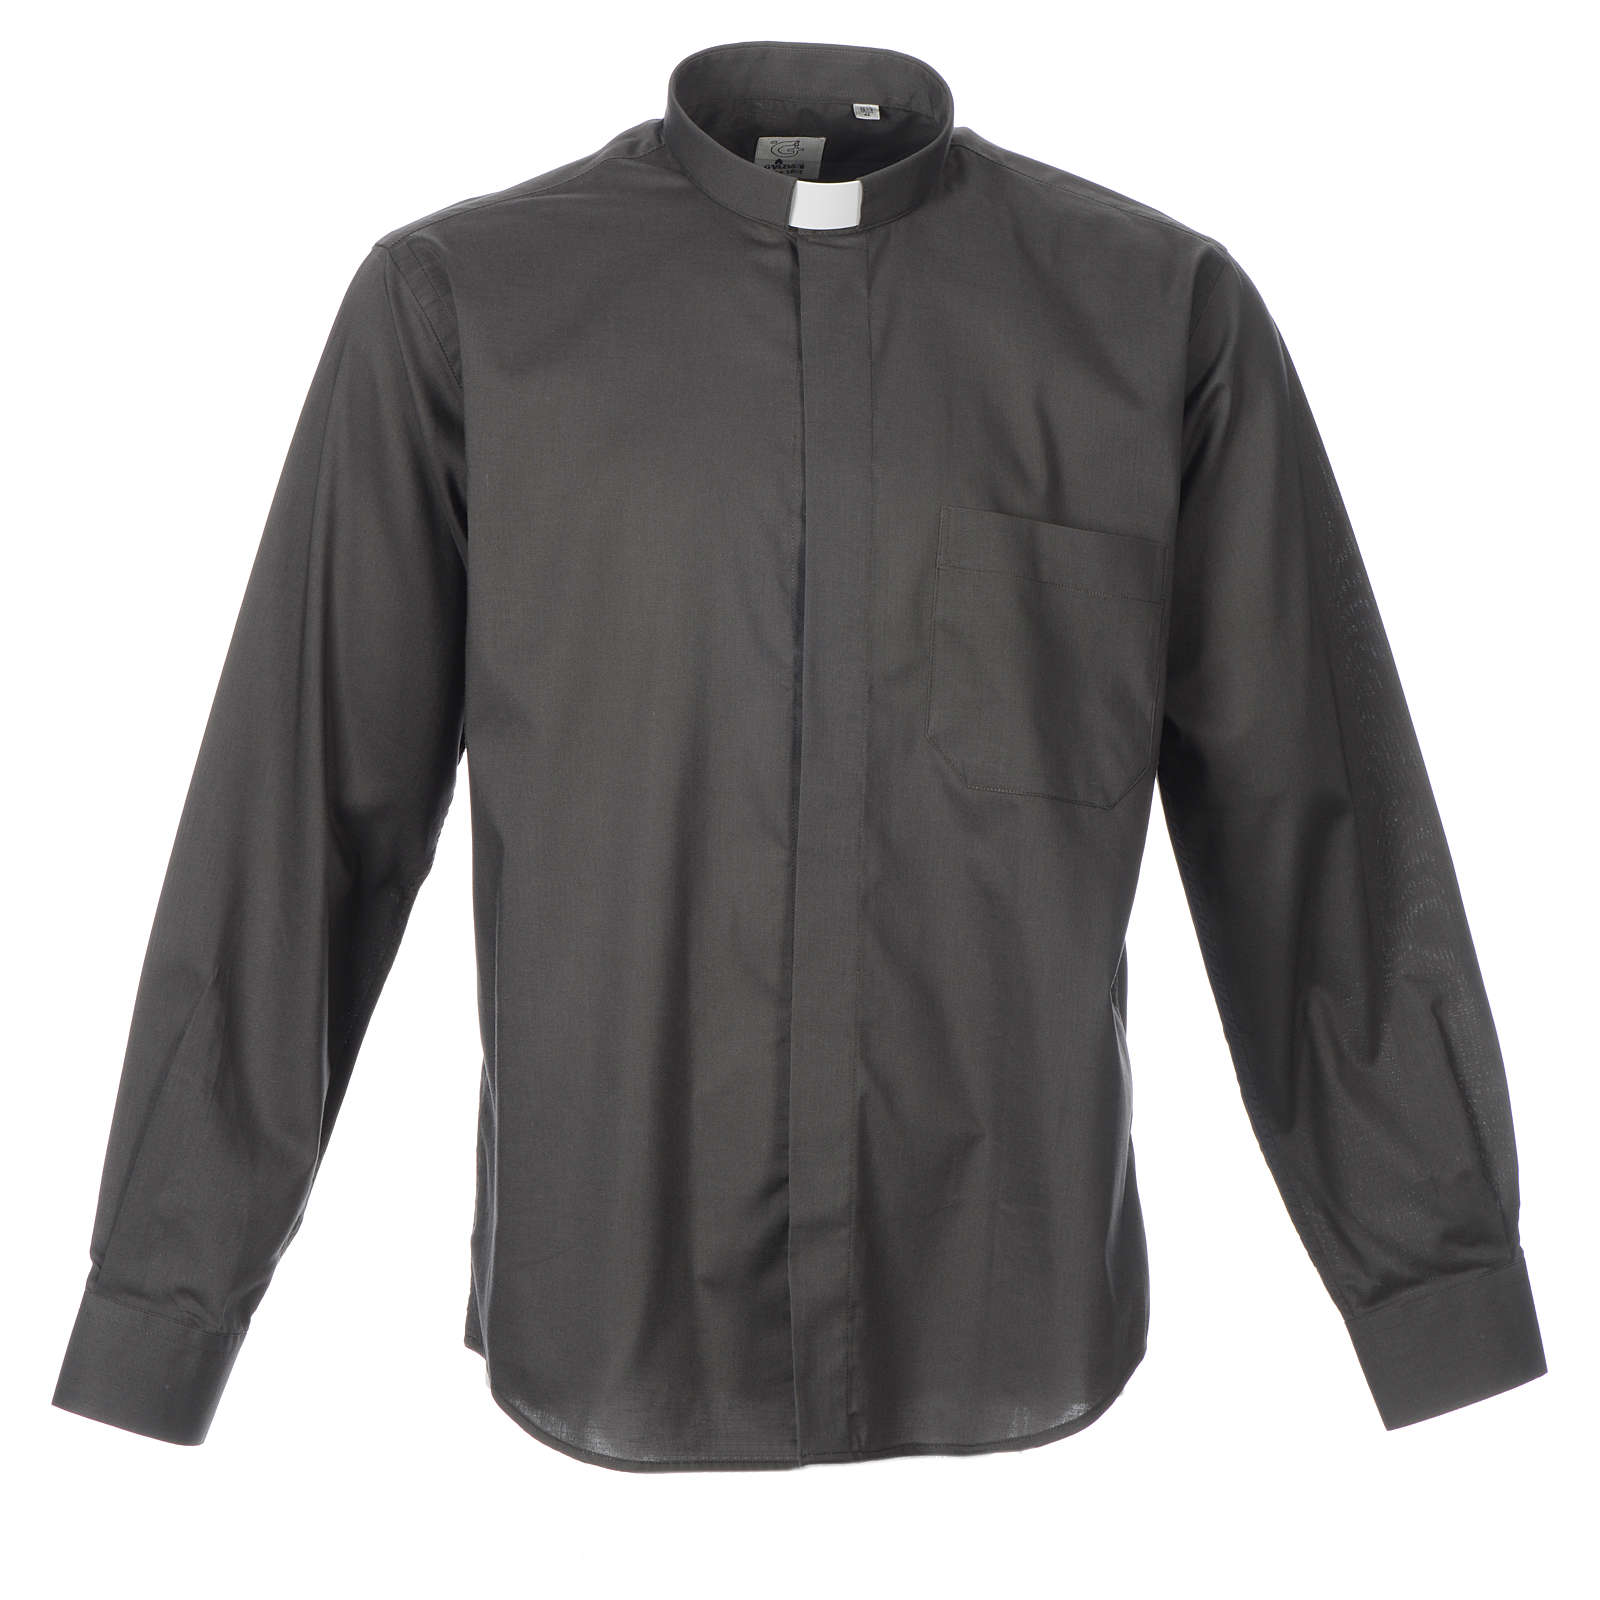 STOCK Clergy shirt, long sleeves in dark grey mixed cotton 4